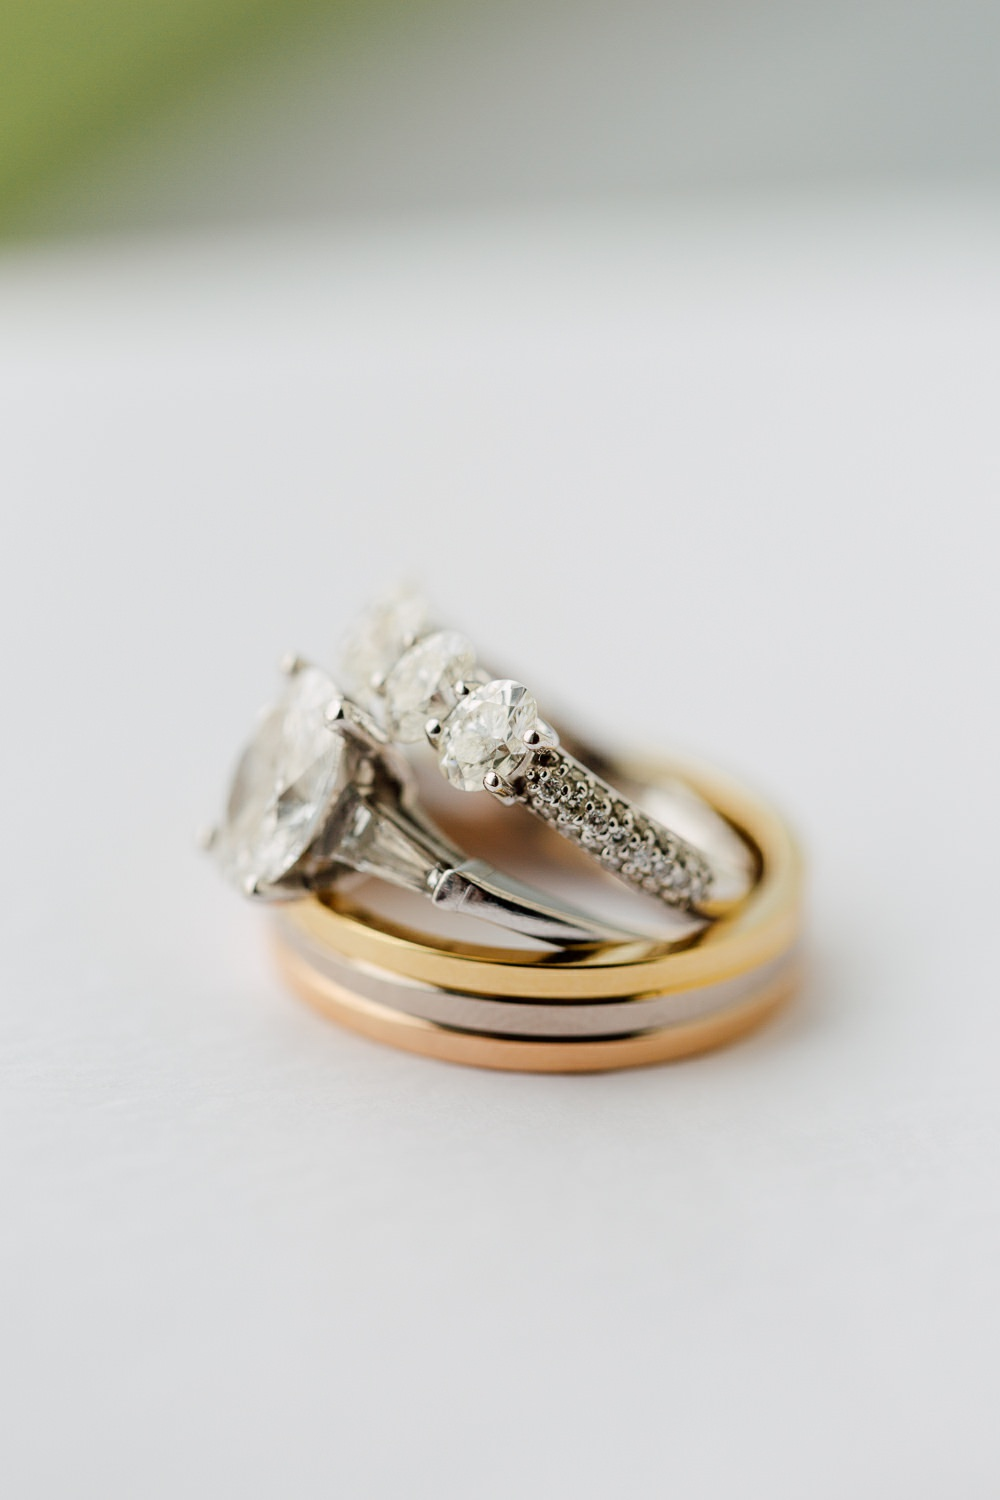 87 toronto wedding bands diy wedding rings is a